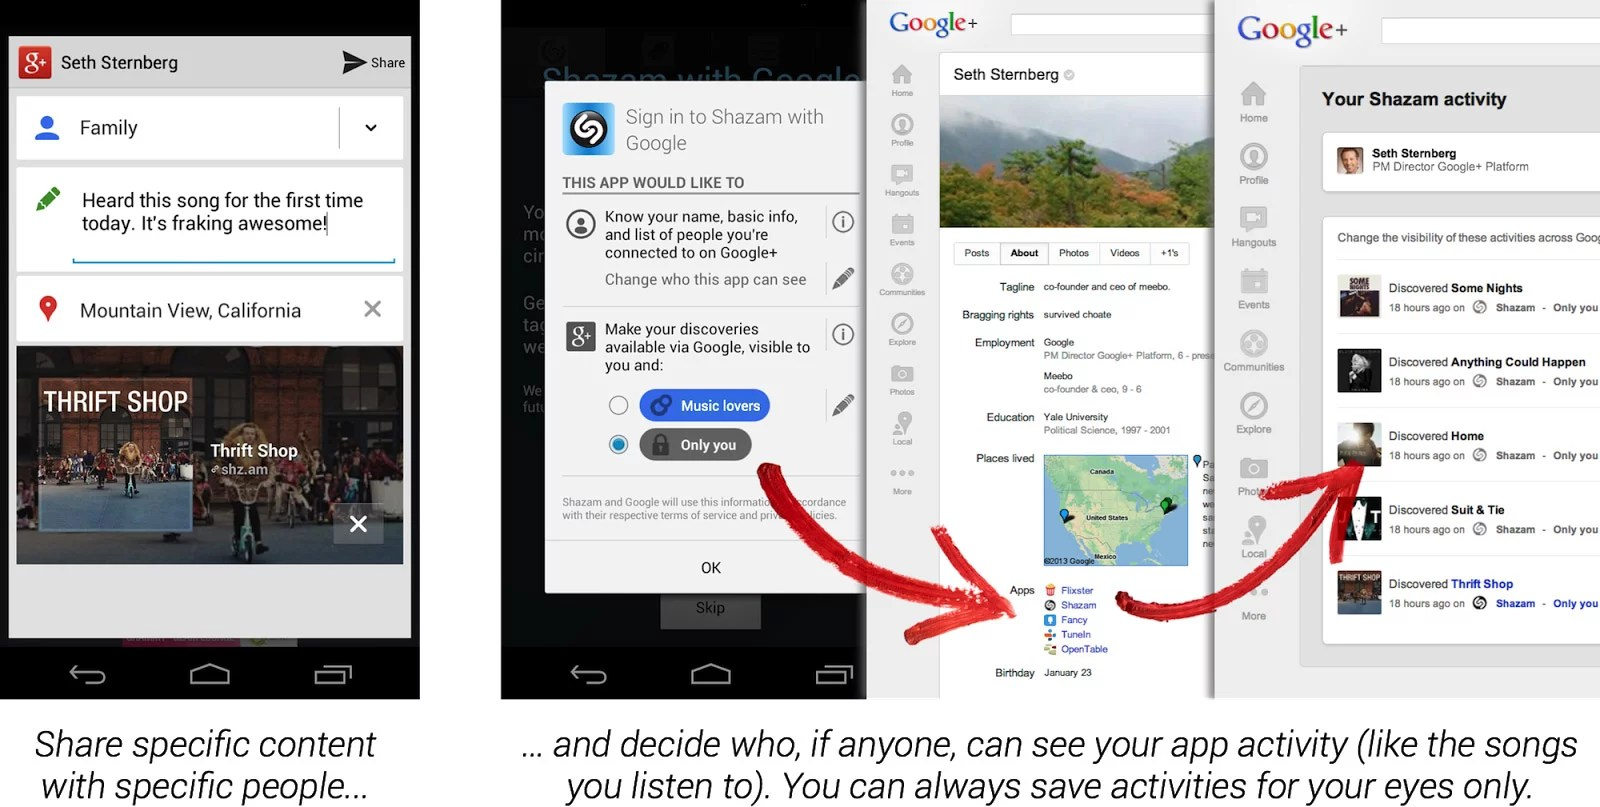 Google plus Sign in Sharing is selective; spraying is just spam